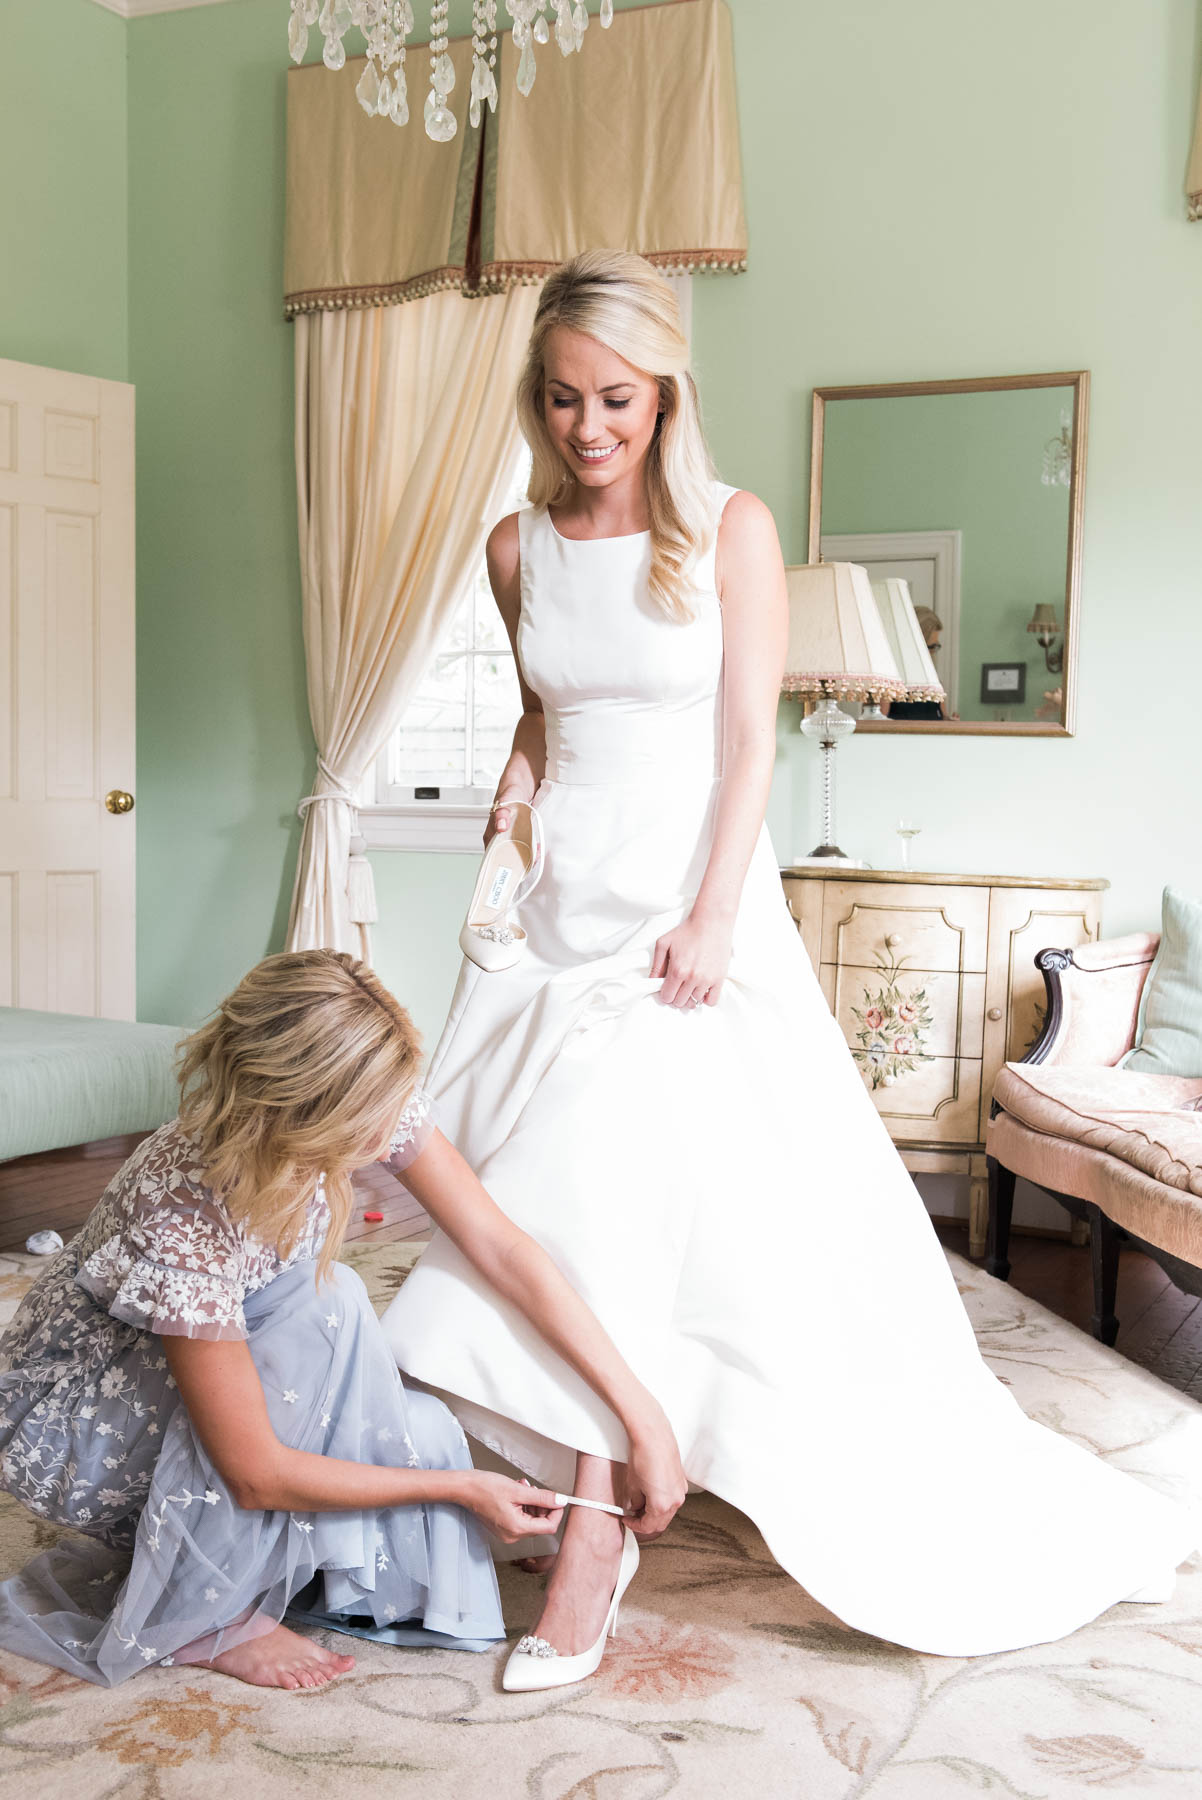 Wedding day photo ideas not to be missed for the bride and her maid of honor // Rhyme & Reason